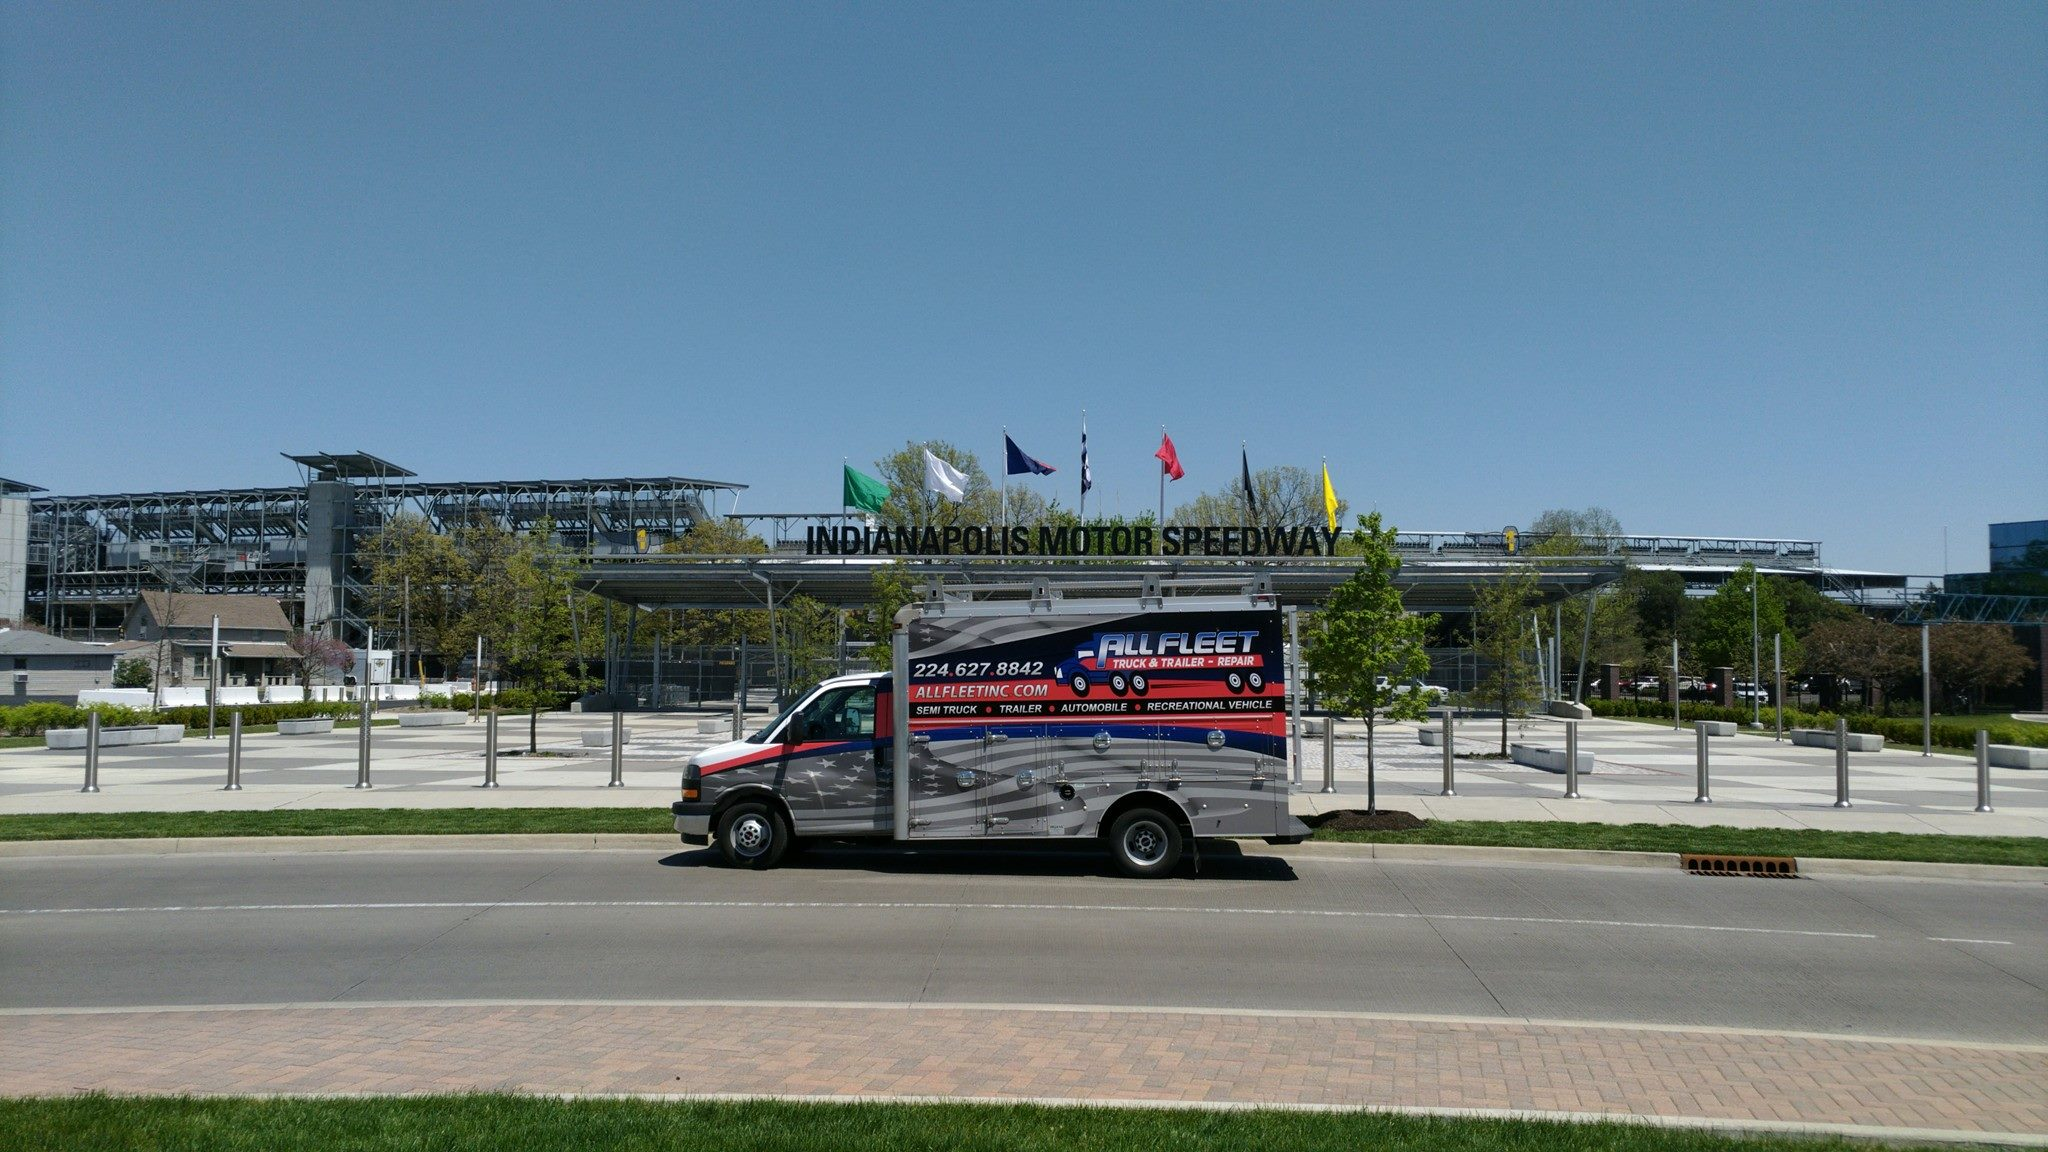 All Fleet Mobile Truck by Indianapolis Motor Speedway